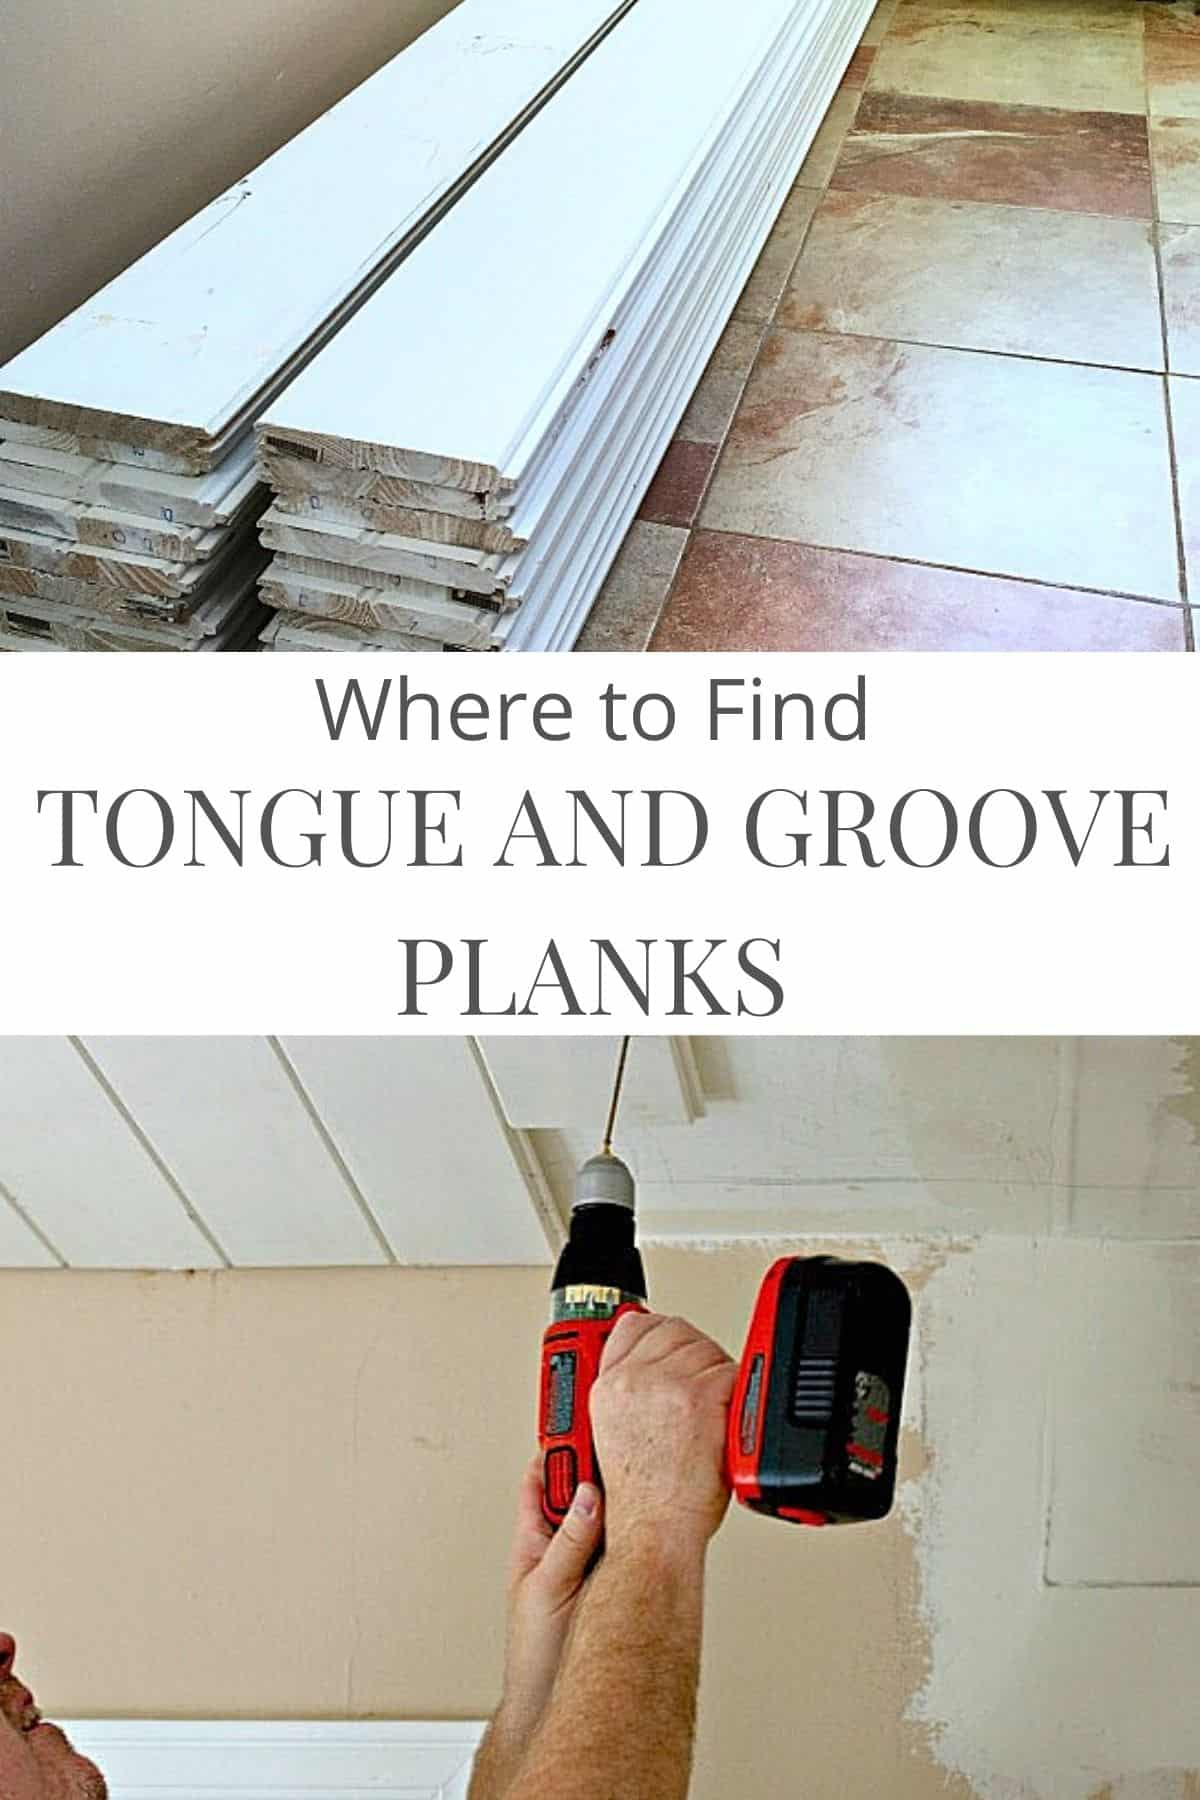 tongue and groove planks on floor and installation